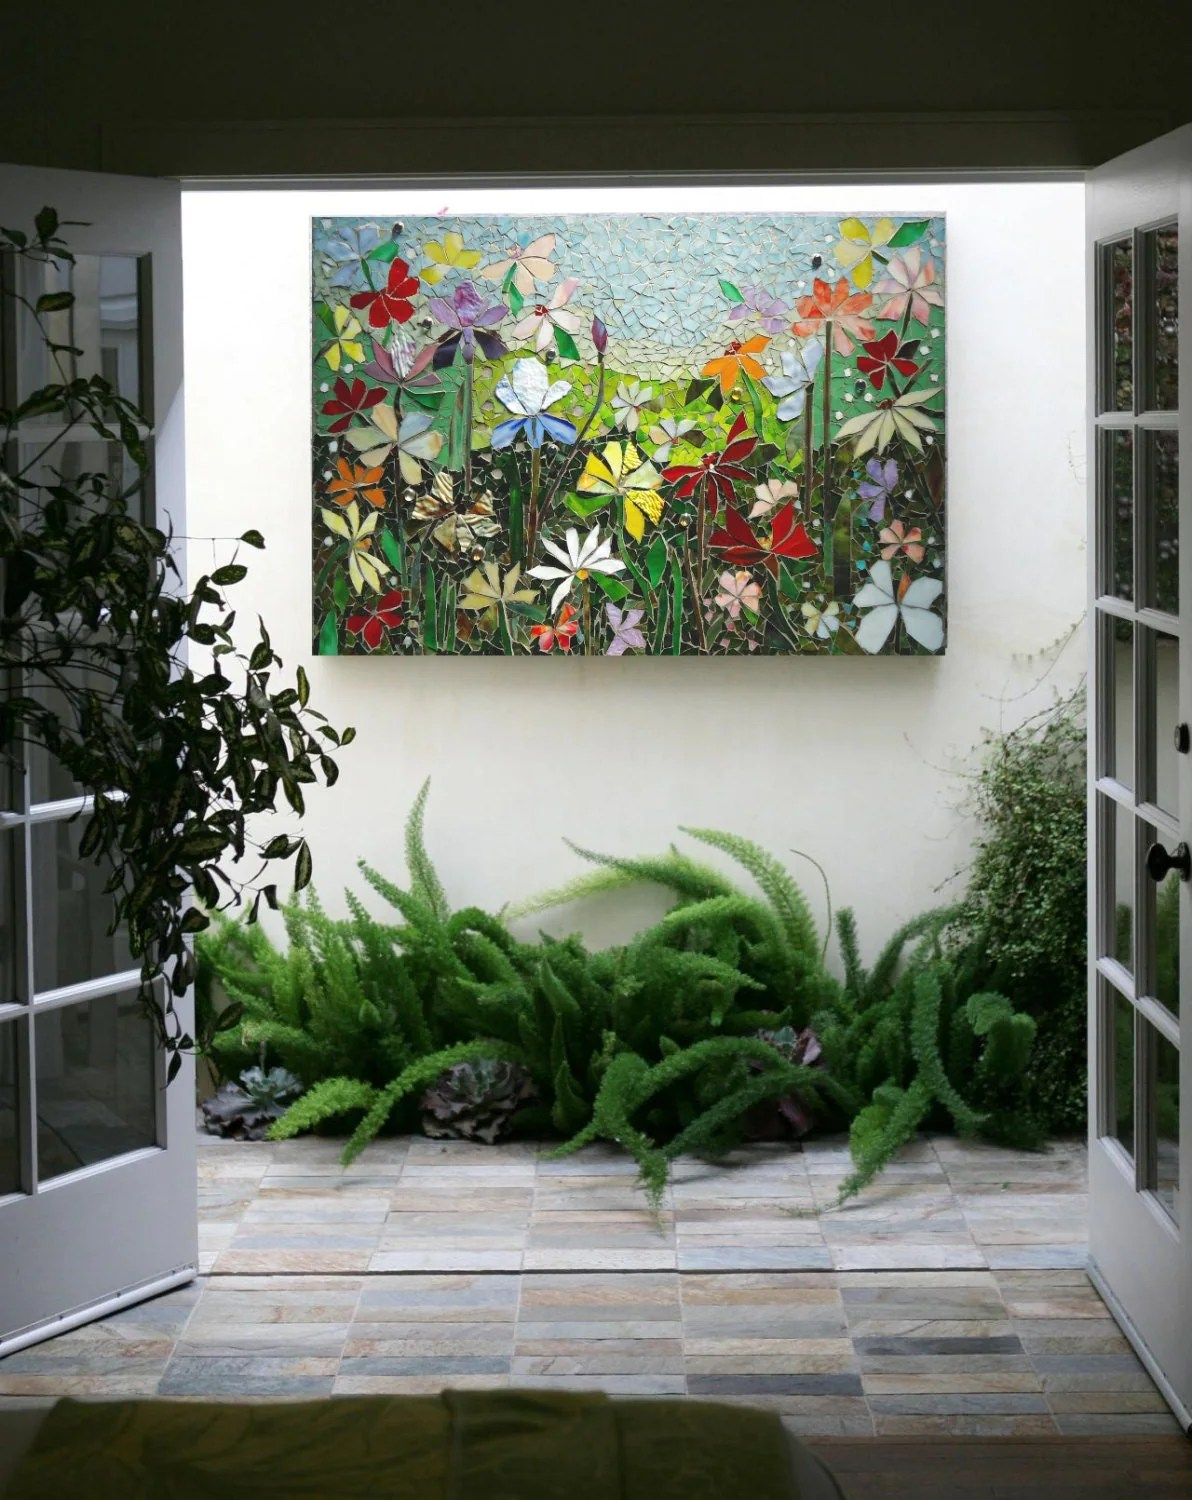 MOSAIC WALL ART stained glass wall decor floral garden indoor